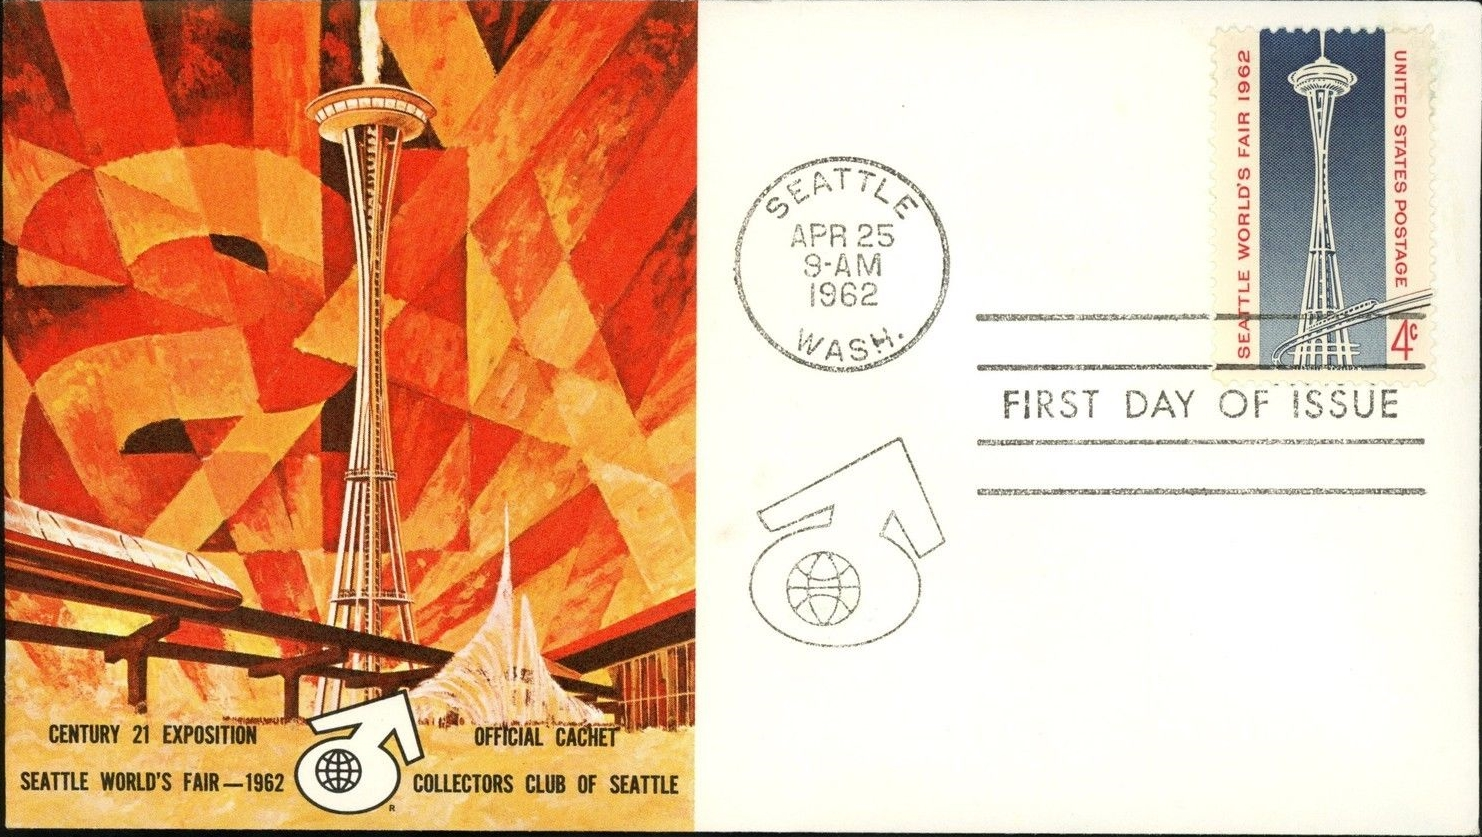 United States - Scott #1196 (1962) first day cover with cachet by the Collectors Club of Seattle.